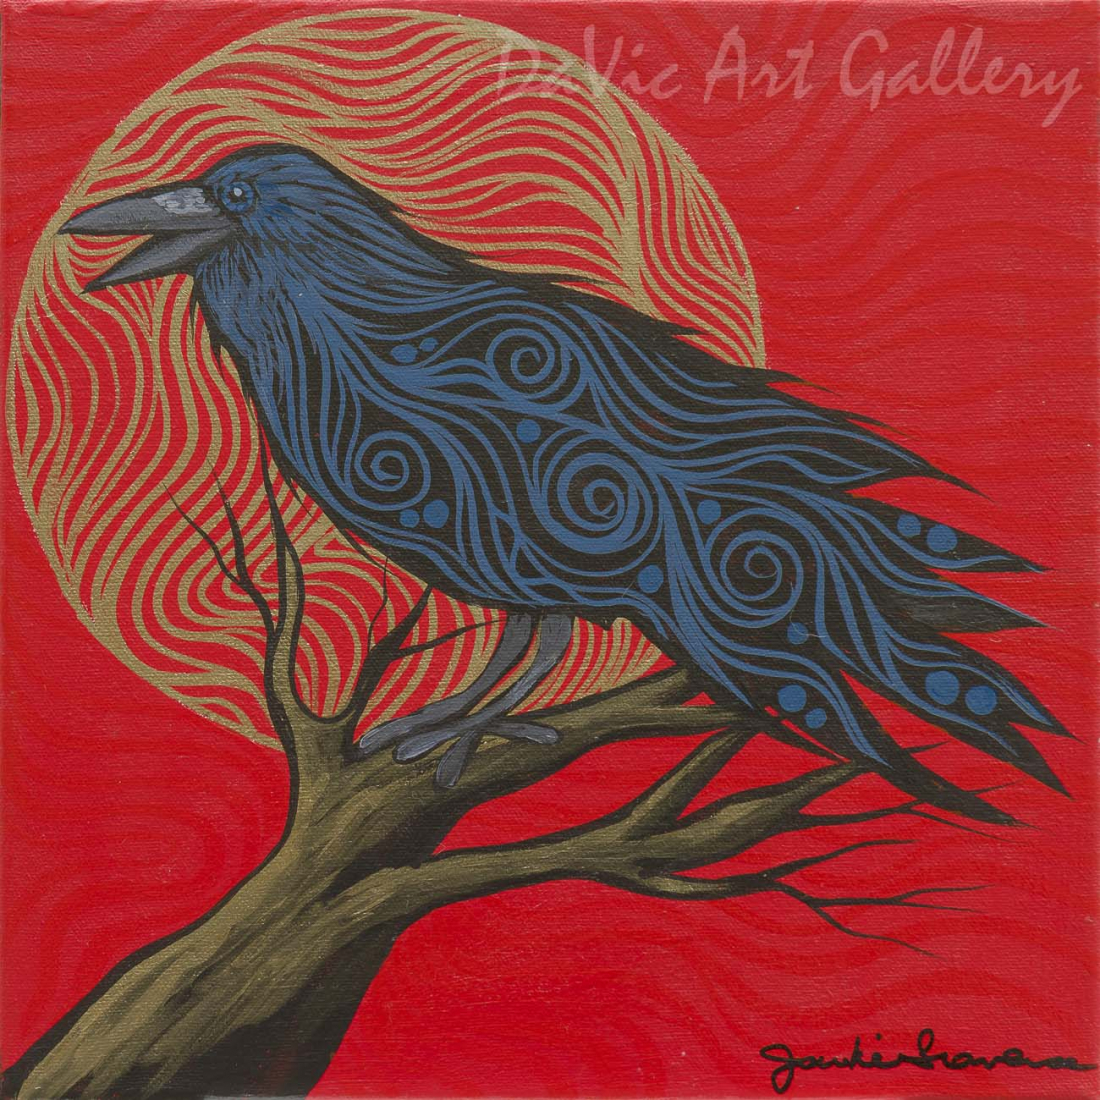 Man and the Ravens II by First Nations Anishinaabe artist Jackie Traverse